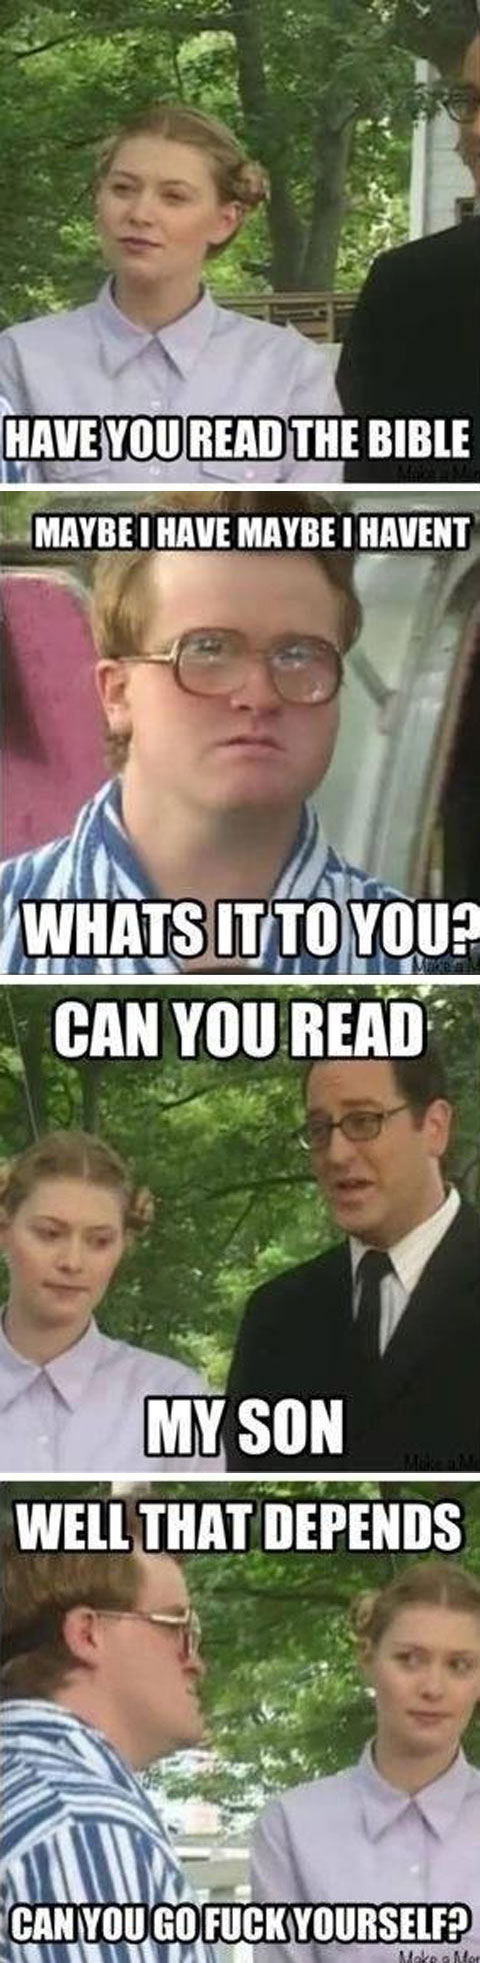 I love trailer park boys, and this is just one of many reasons why…